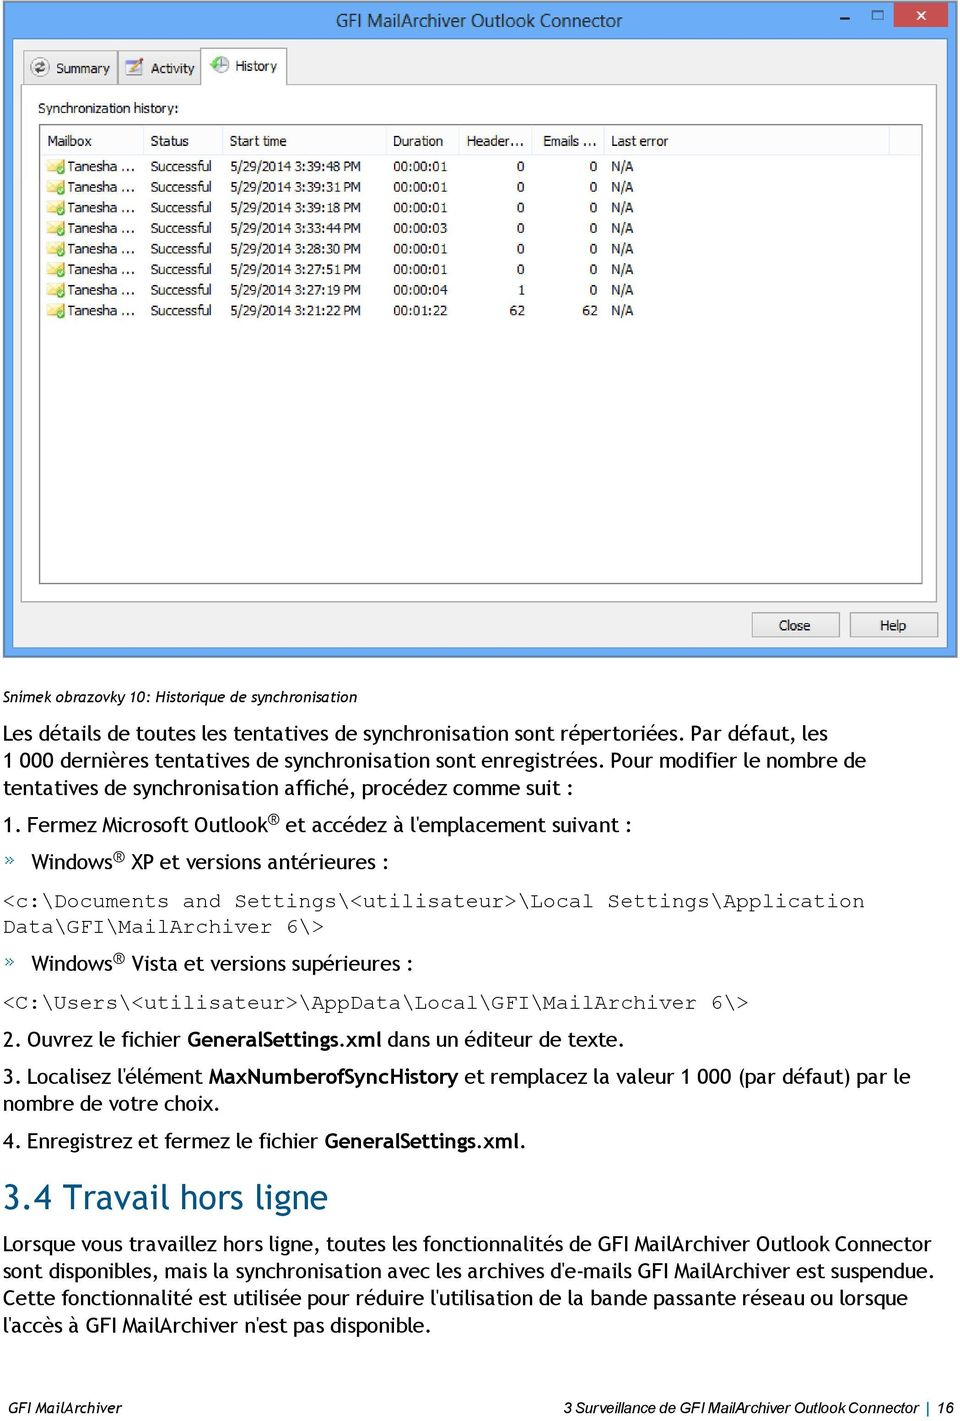 Fermez Microsoft Outlook et accédez à l'emplacement suivant : Windows XP et versions antérieures : <c:\documents and Settings\<utilisateur>\Local Settings\Application Data\GFI\MailArchiver 6\>